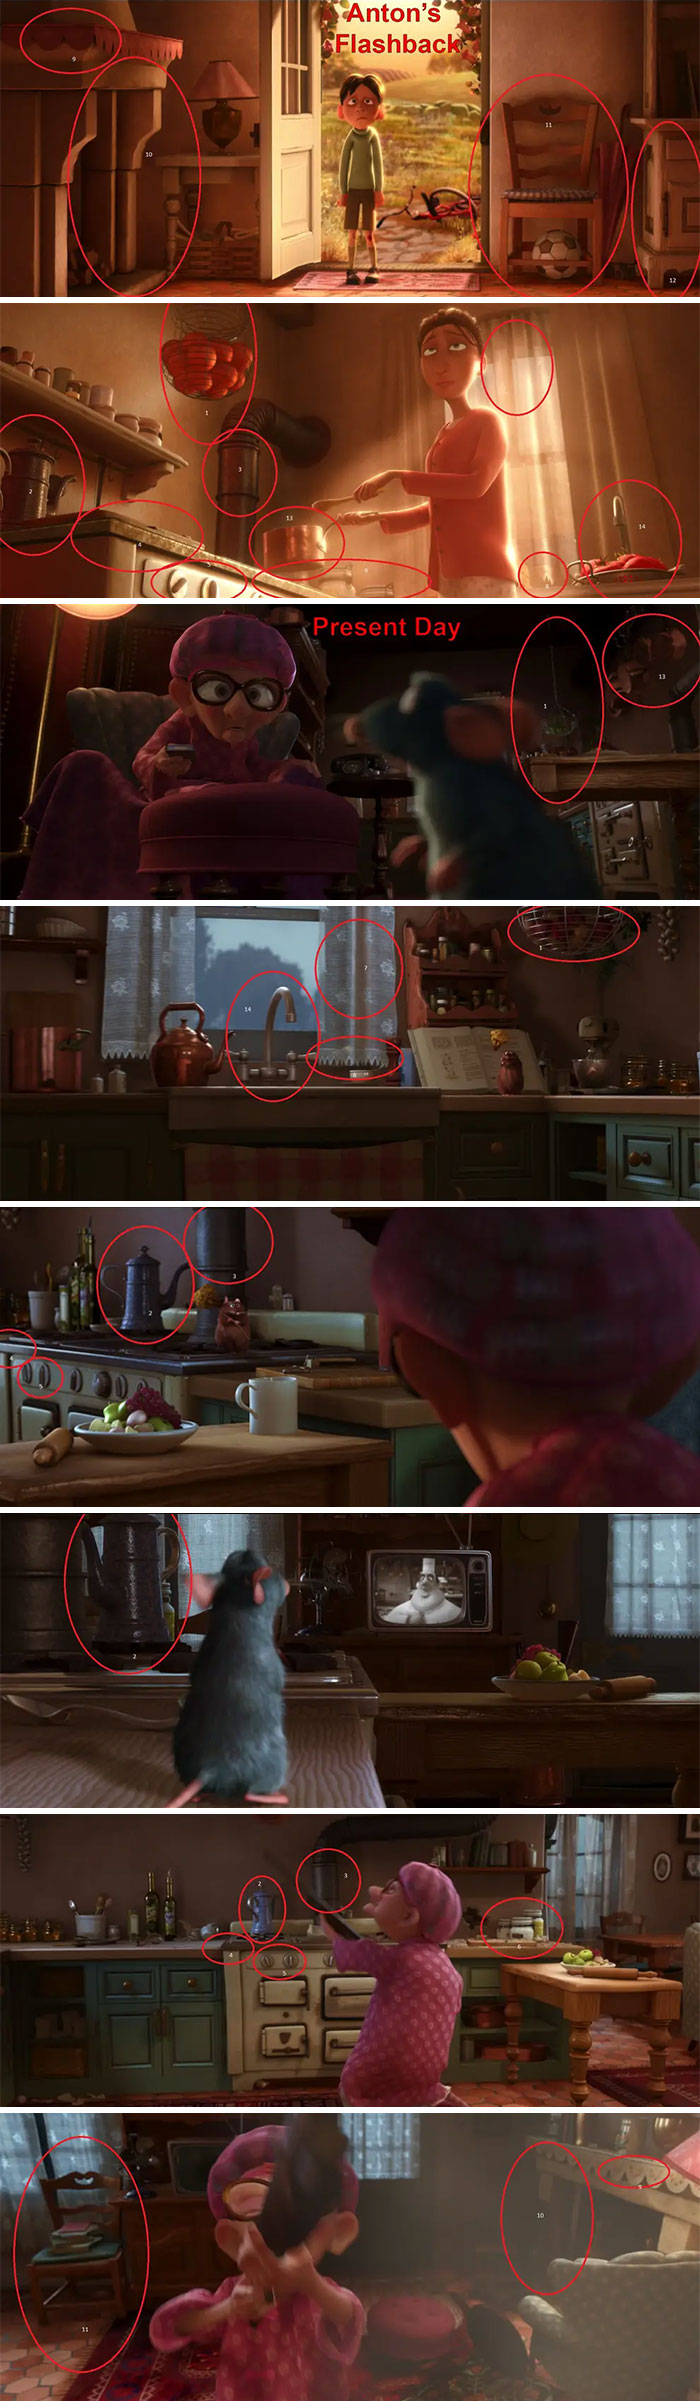 When Anton Tastes Remy's Ratatouille, He's Reminded Of His Mother's Cooking. There's A Few Hidden Details That Suggest Remy Grew Up In Anton's Mother's House, Learning To Cook By Watching Anton's Mother